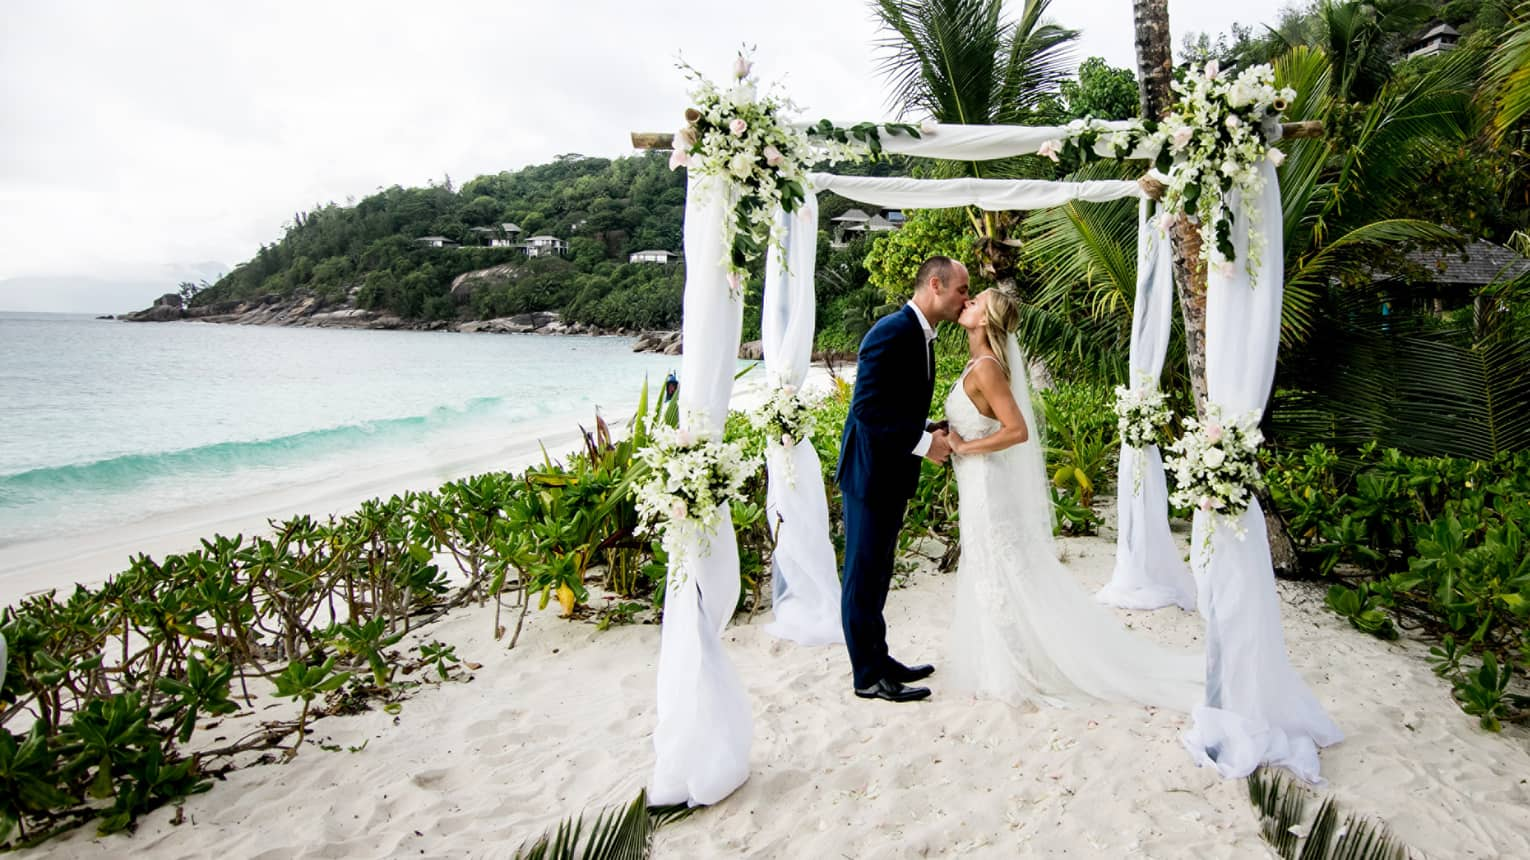 Wedding couple kissing under decorated canopy standing on sand surrounded by greenery and ocean